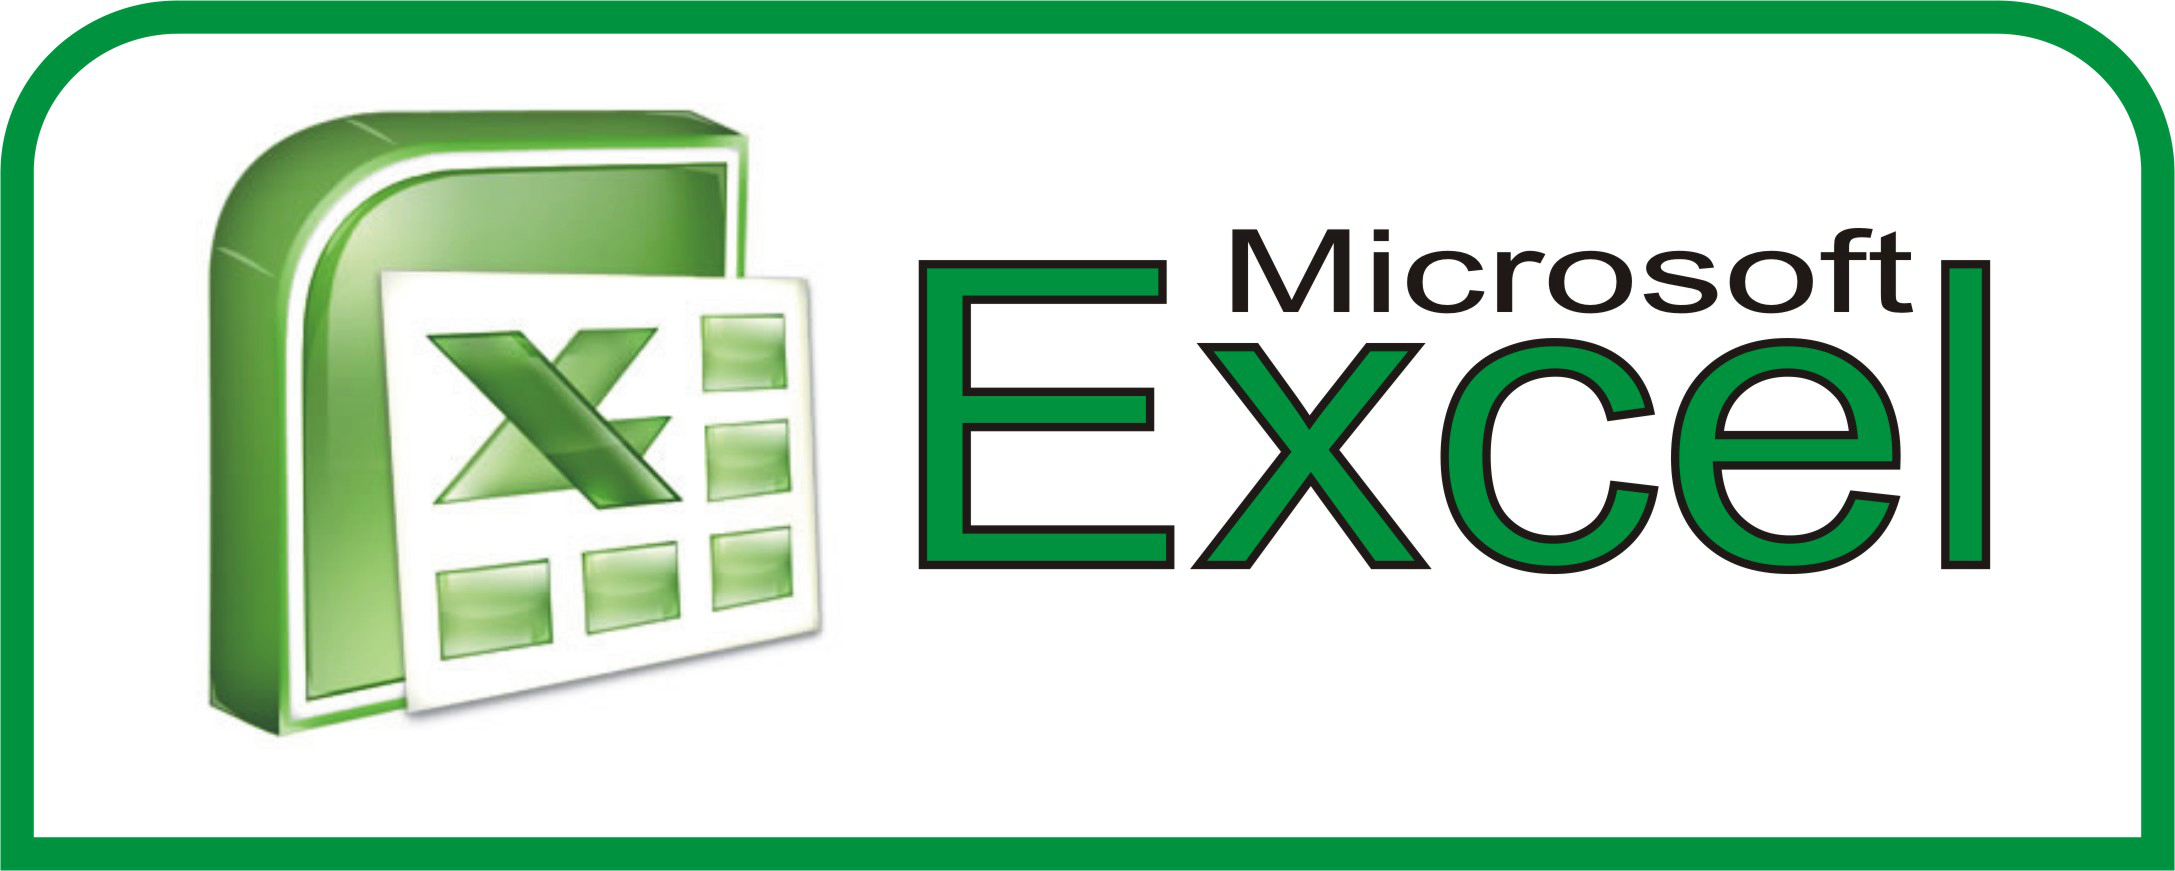 Ediblewildsus  Mesmerizing  Excel Shortcuts You Probably Didnt Know About  Techdissected With Gorgeous Pdf To Excel Coverter Besides Change Drop Down List In Excel Furthermore What Is Excel Solver With Astonishing Simple Gantt Chart Excel Template Also Excel  Remove Blank Rows In Addition New Horizons Excel Training And Production Scheduling Excel As Well As How To Count Cells With Text In Excel Additionally Open And Edit Excel Files From Techdissectedcom With Ediblewildsus  Gorgeous  Excel Shortcuts You Probably Didnt Know About  Techdissected With Astonishing Pdf To Excel Coverter Besides Change Drop Down List In Excel Furthermore What Is Excel Solver And Mesmerizing Simple Gantt Chart Excel Template Also Excel  Remove Blank Rows In Addition New Horizons Excel Training From Techdissectedcom